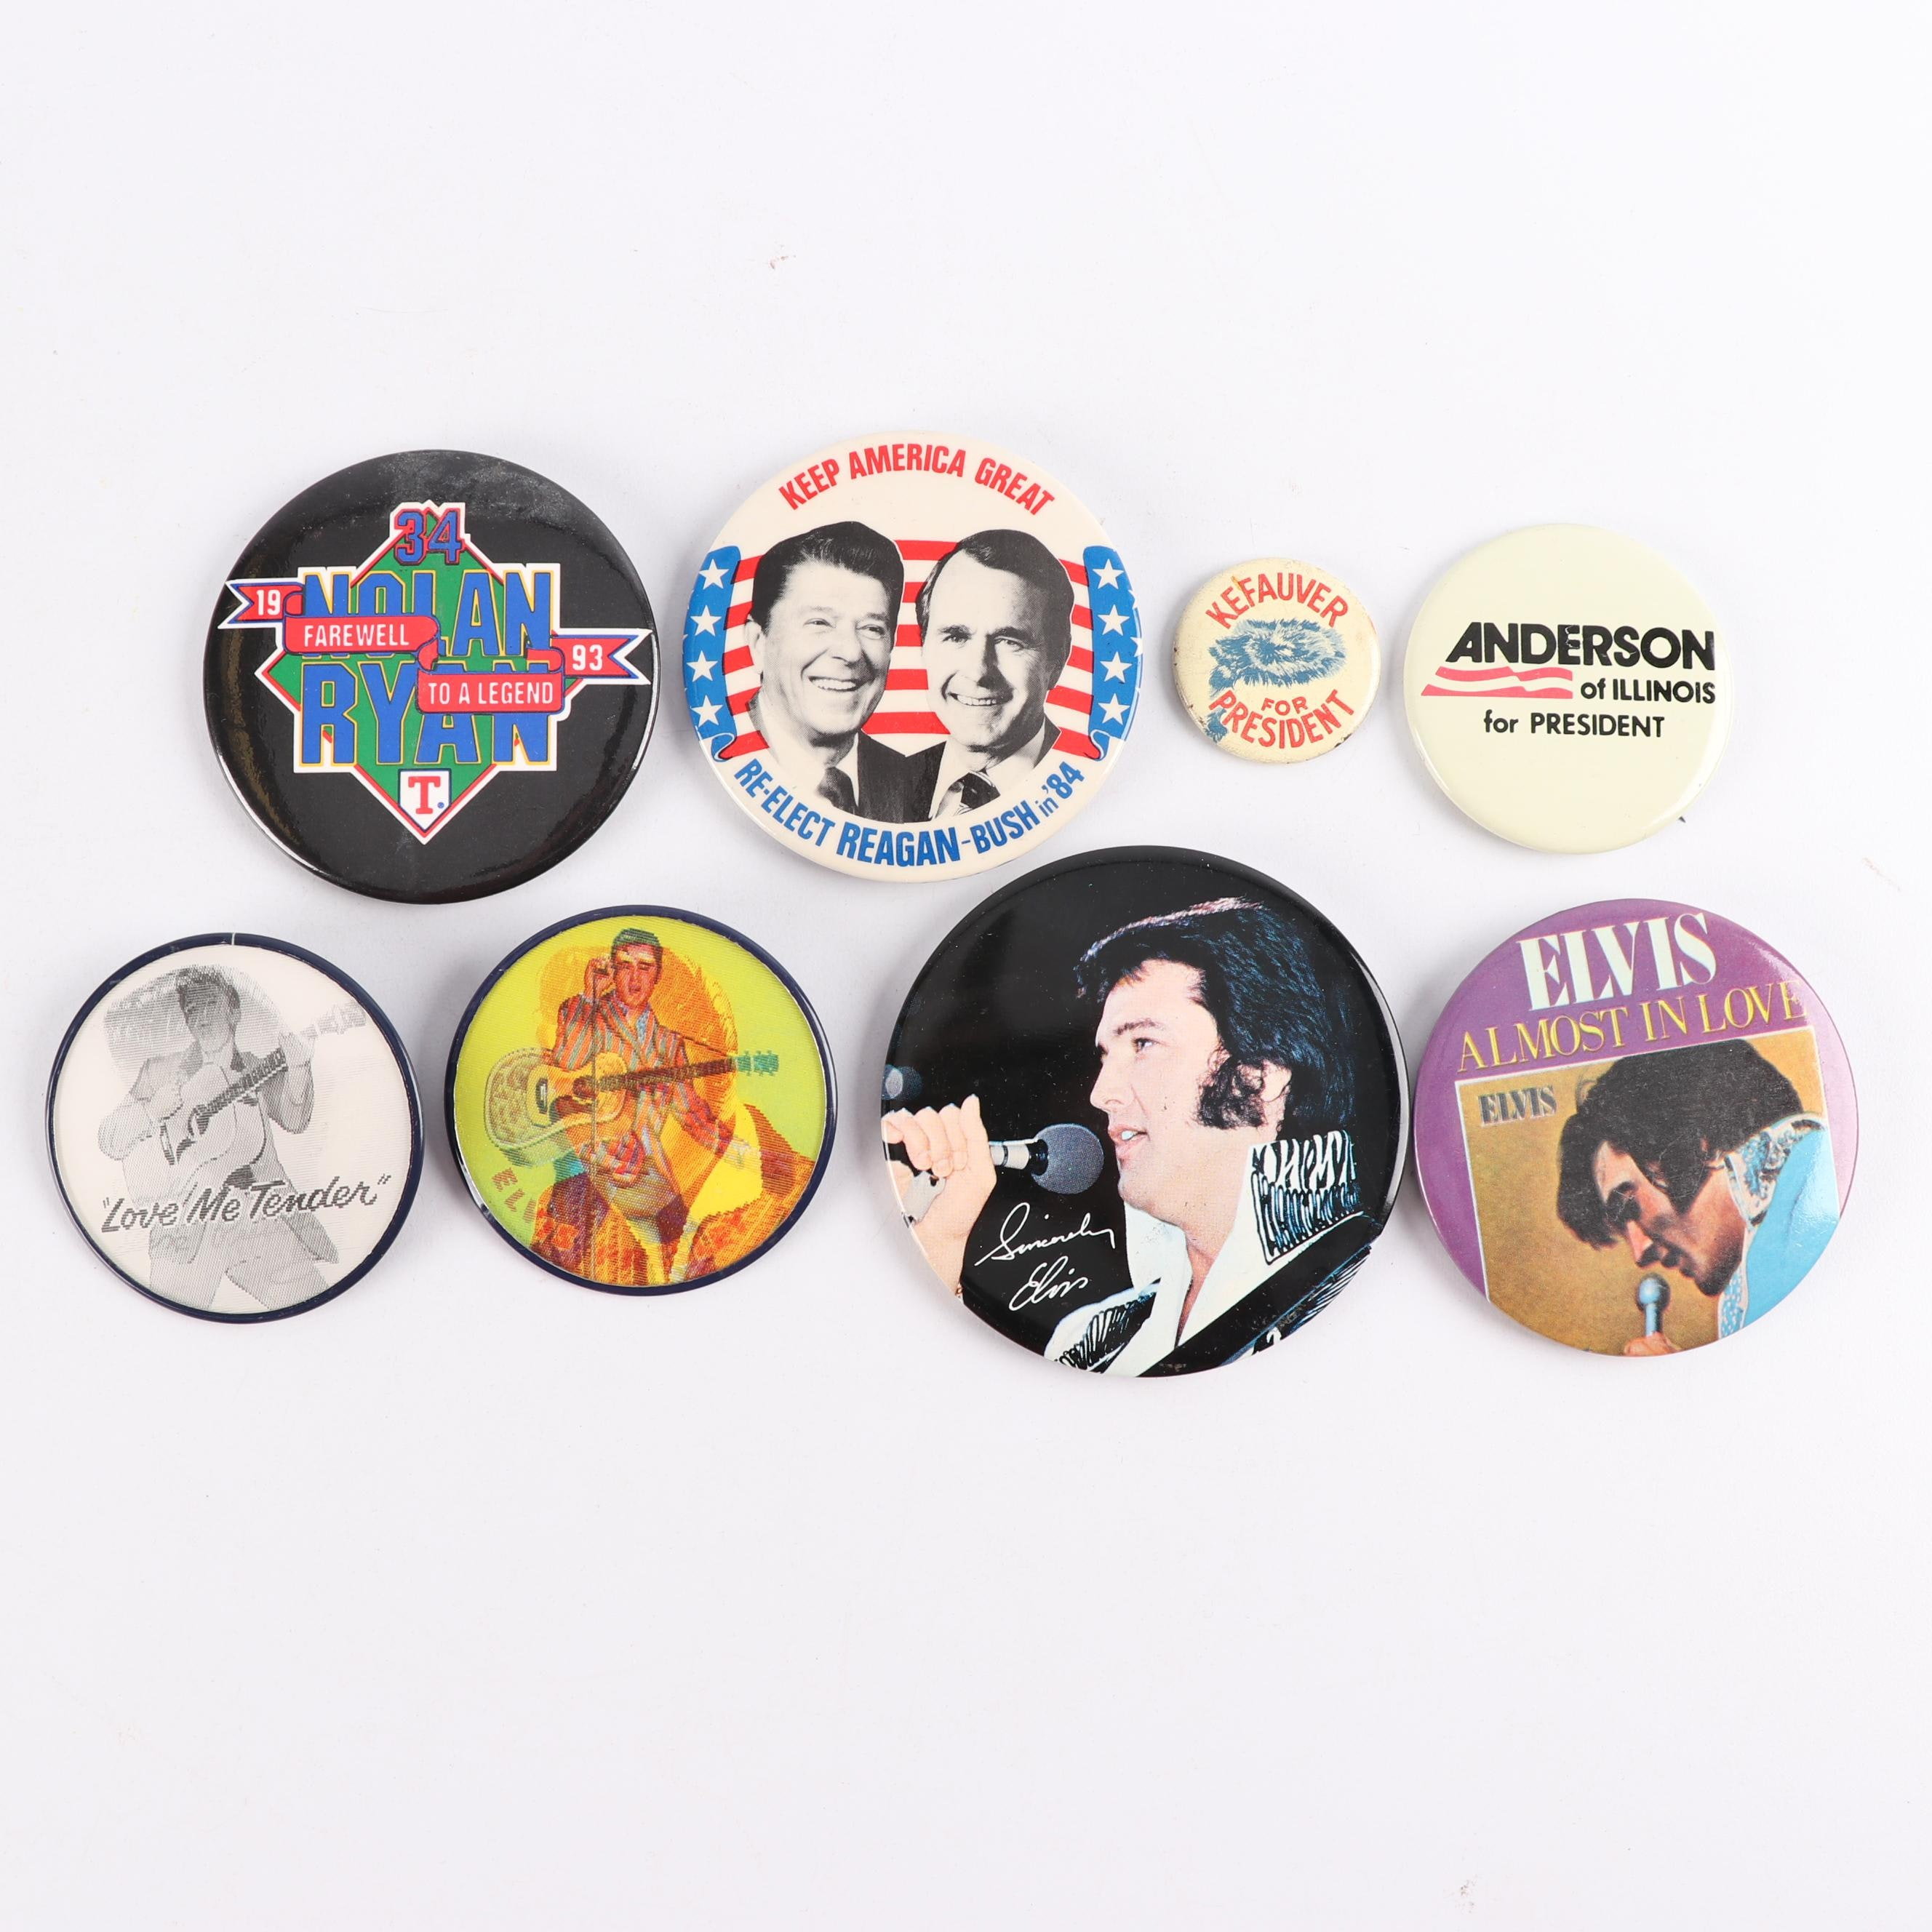 Elvis Presley, Nolan Ryan and Presidential Campaign Buttons